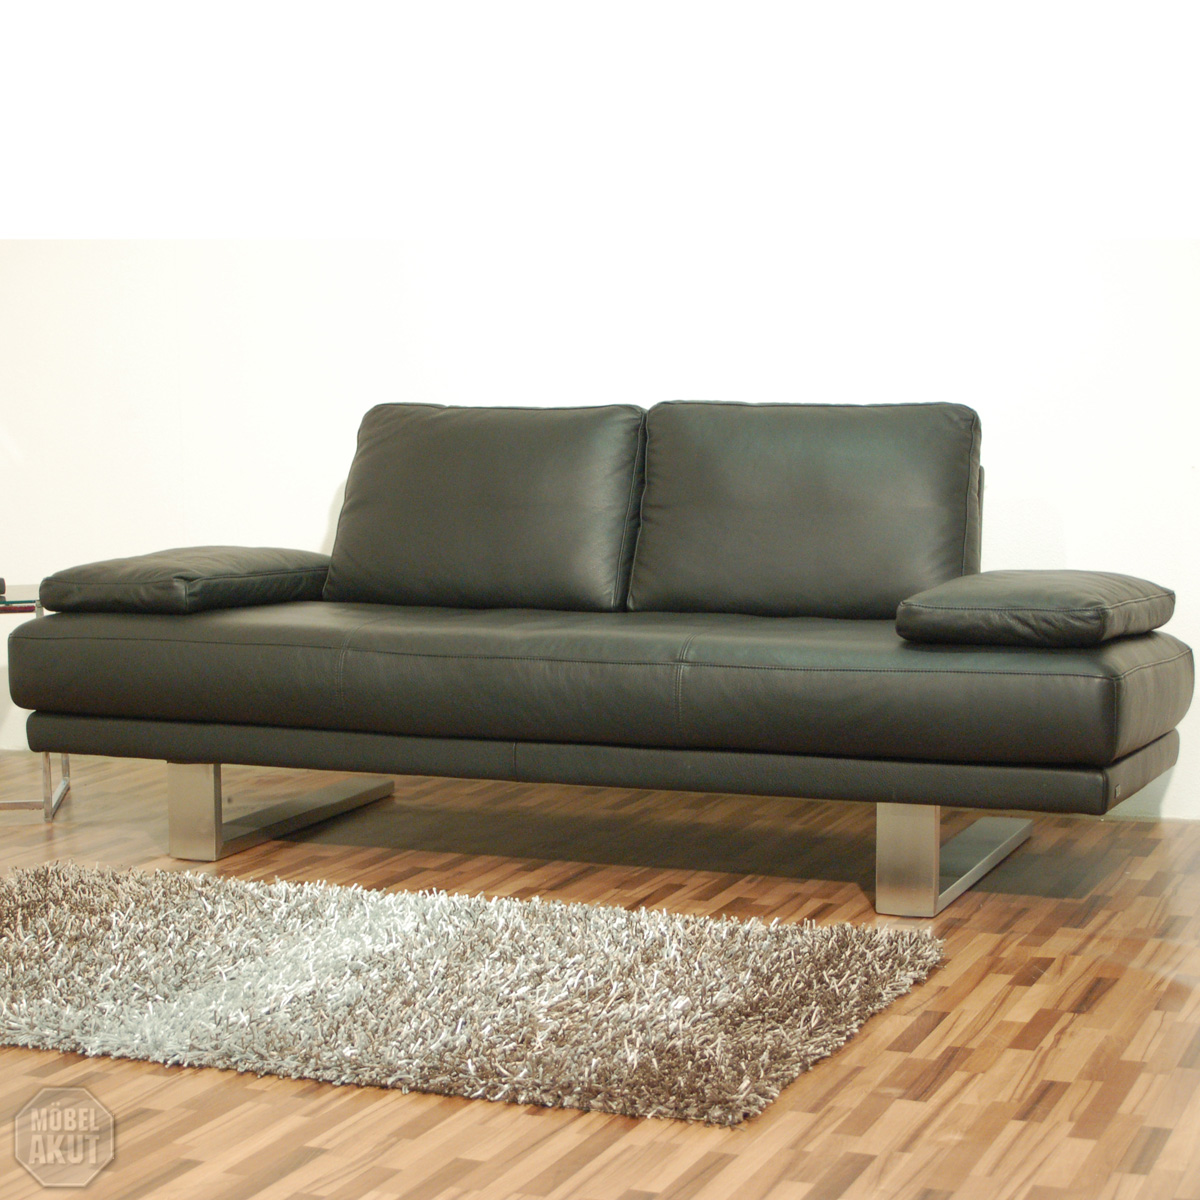 original rolf benz freischwinger sofa sob 6600 in leder schwarz 227 cm ebay. Black Bedroom Furniture Sets. Home Design Ideas